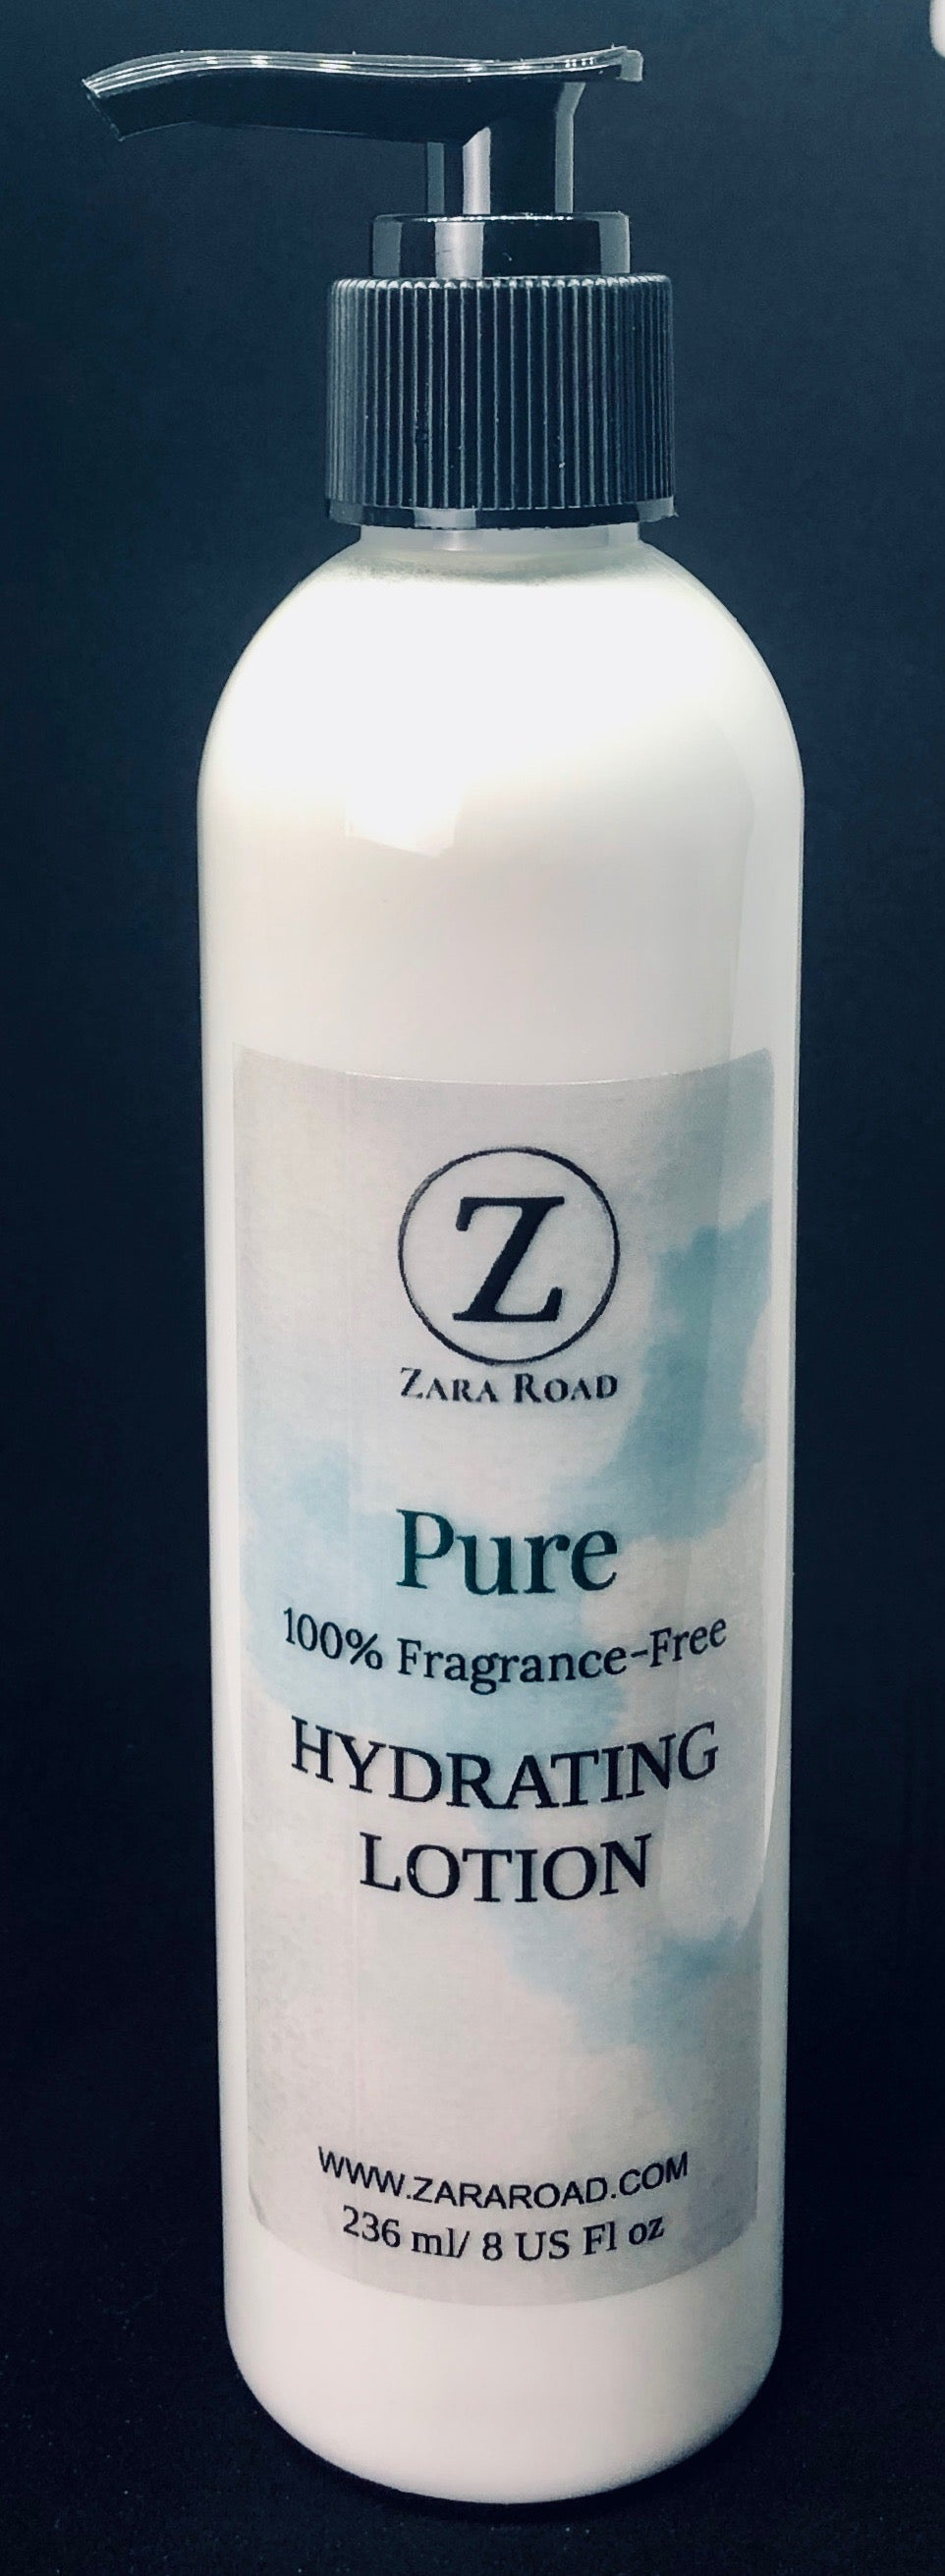 Pure 100% Fragrance-Free Hydrating Lotion